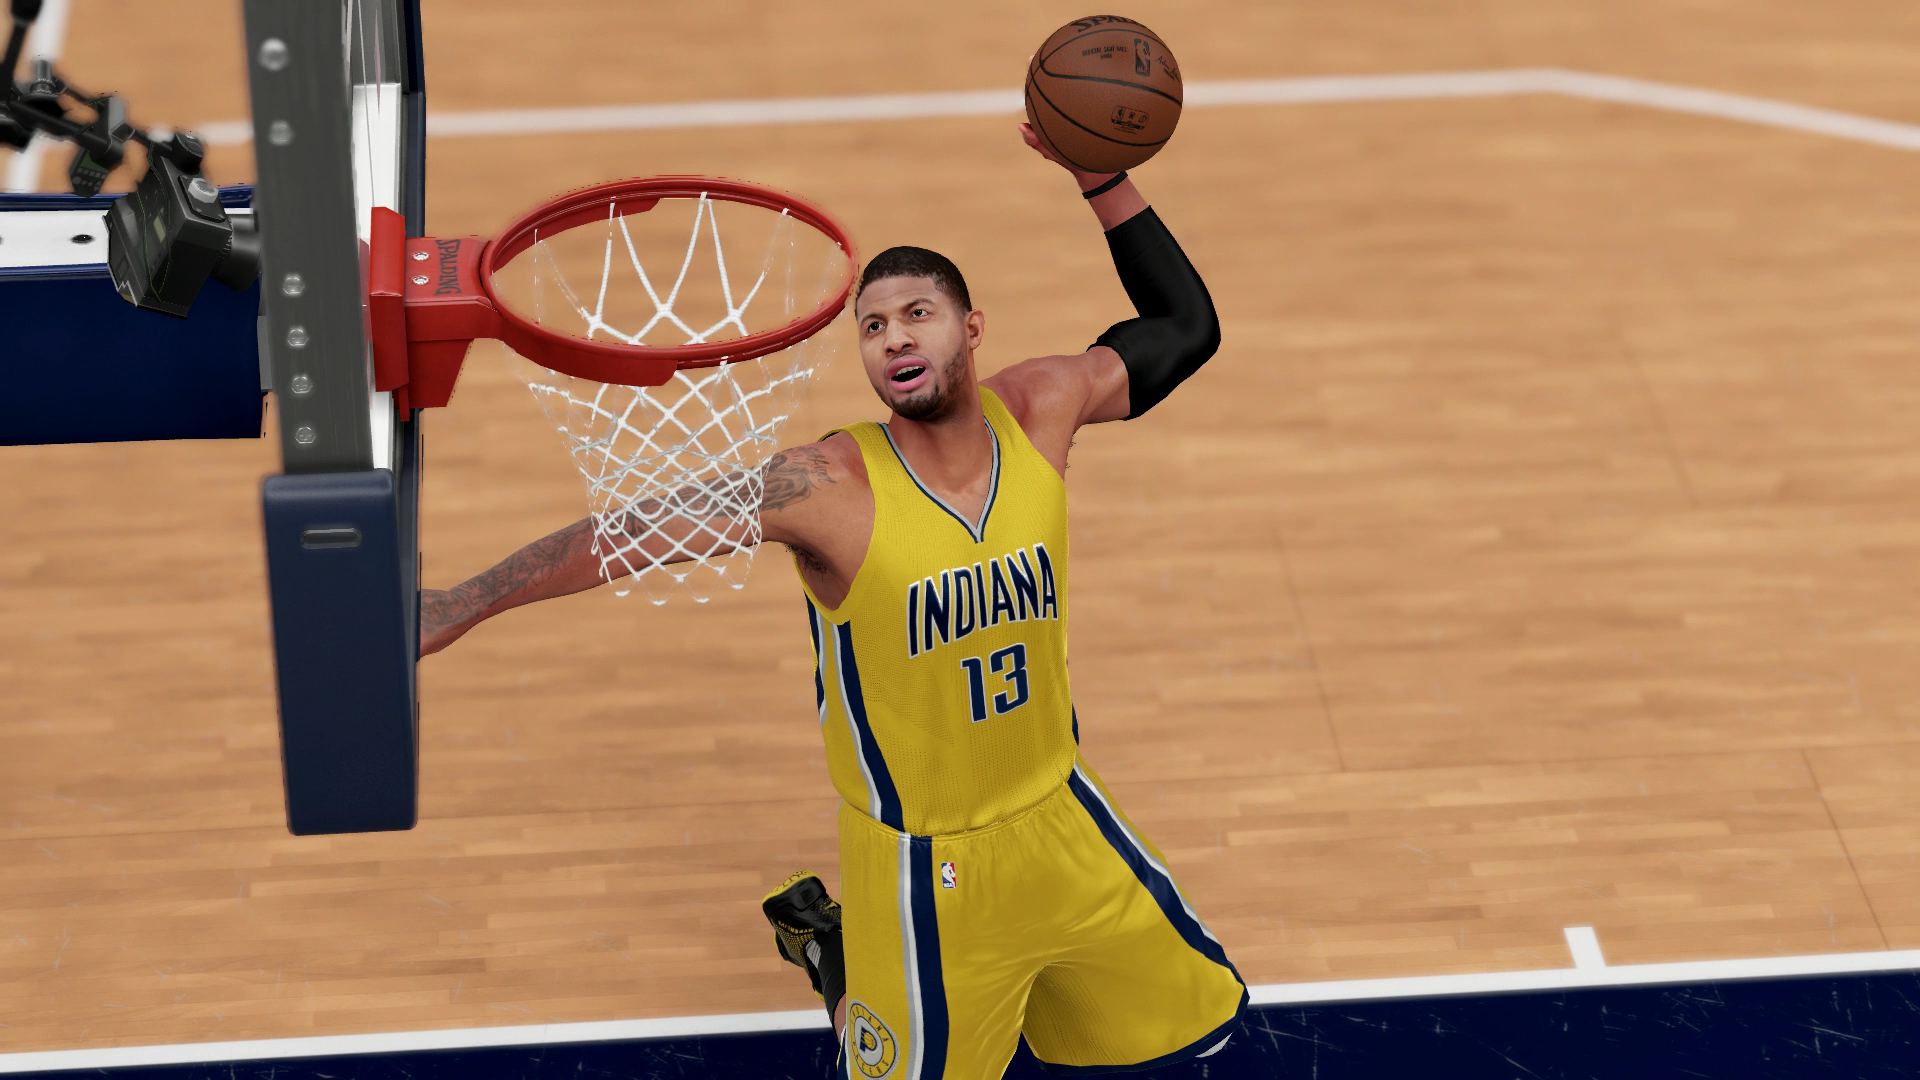 NBA 2K17 cover to feature Pacers' Paul George